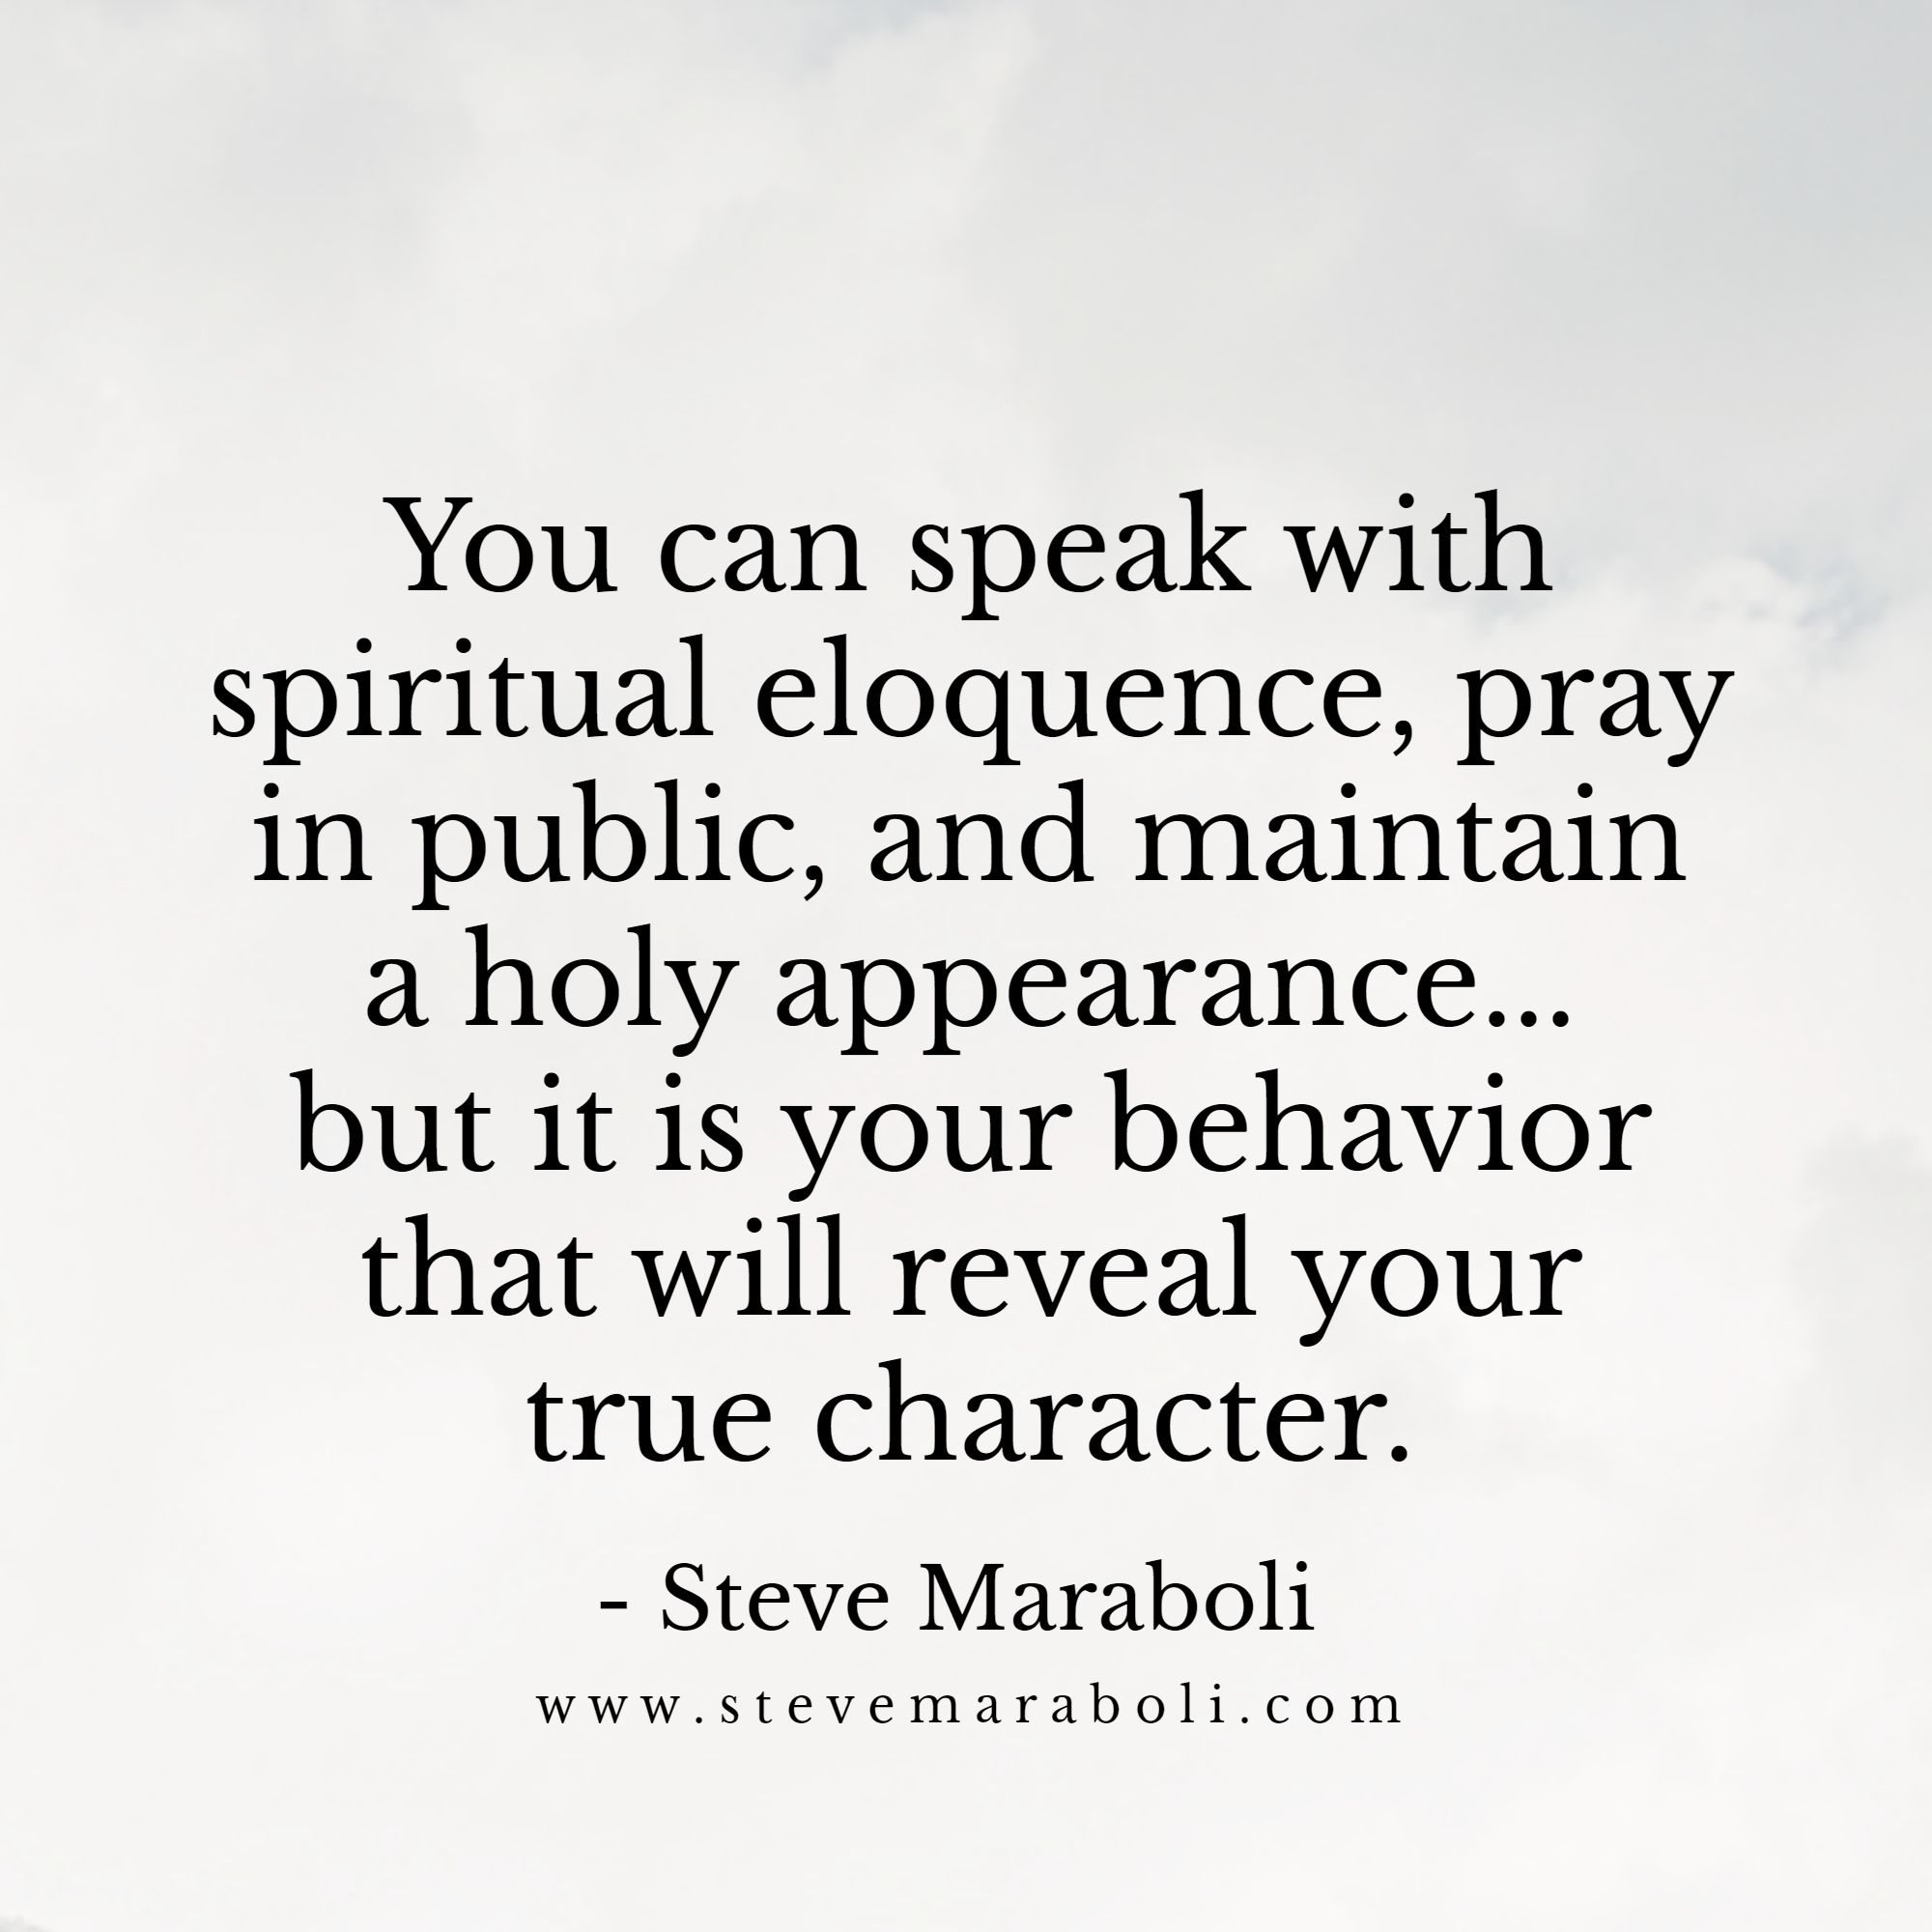 You can speak with spiritual eloquence pray in public and maintain a holy appearance